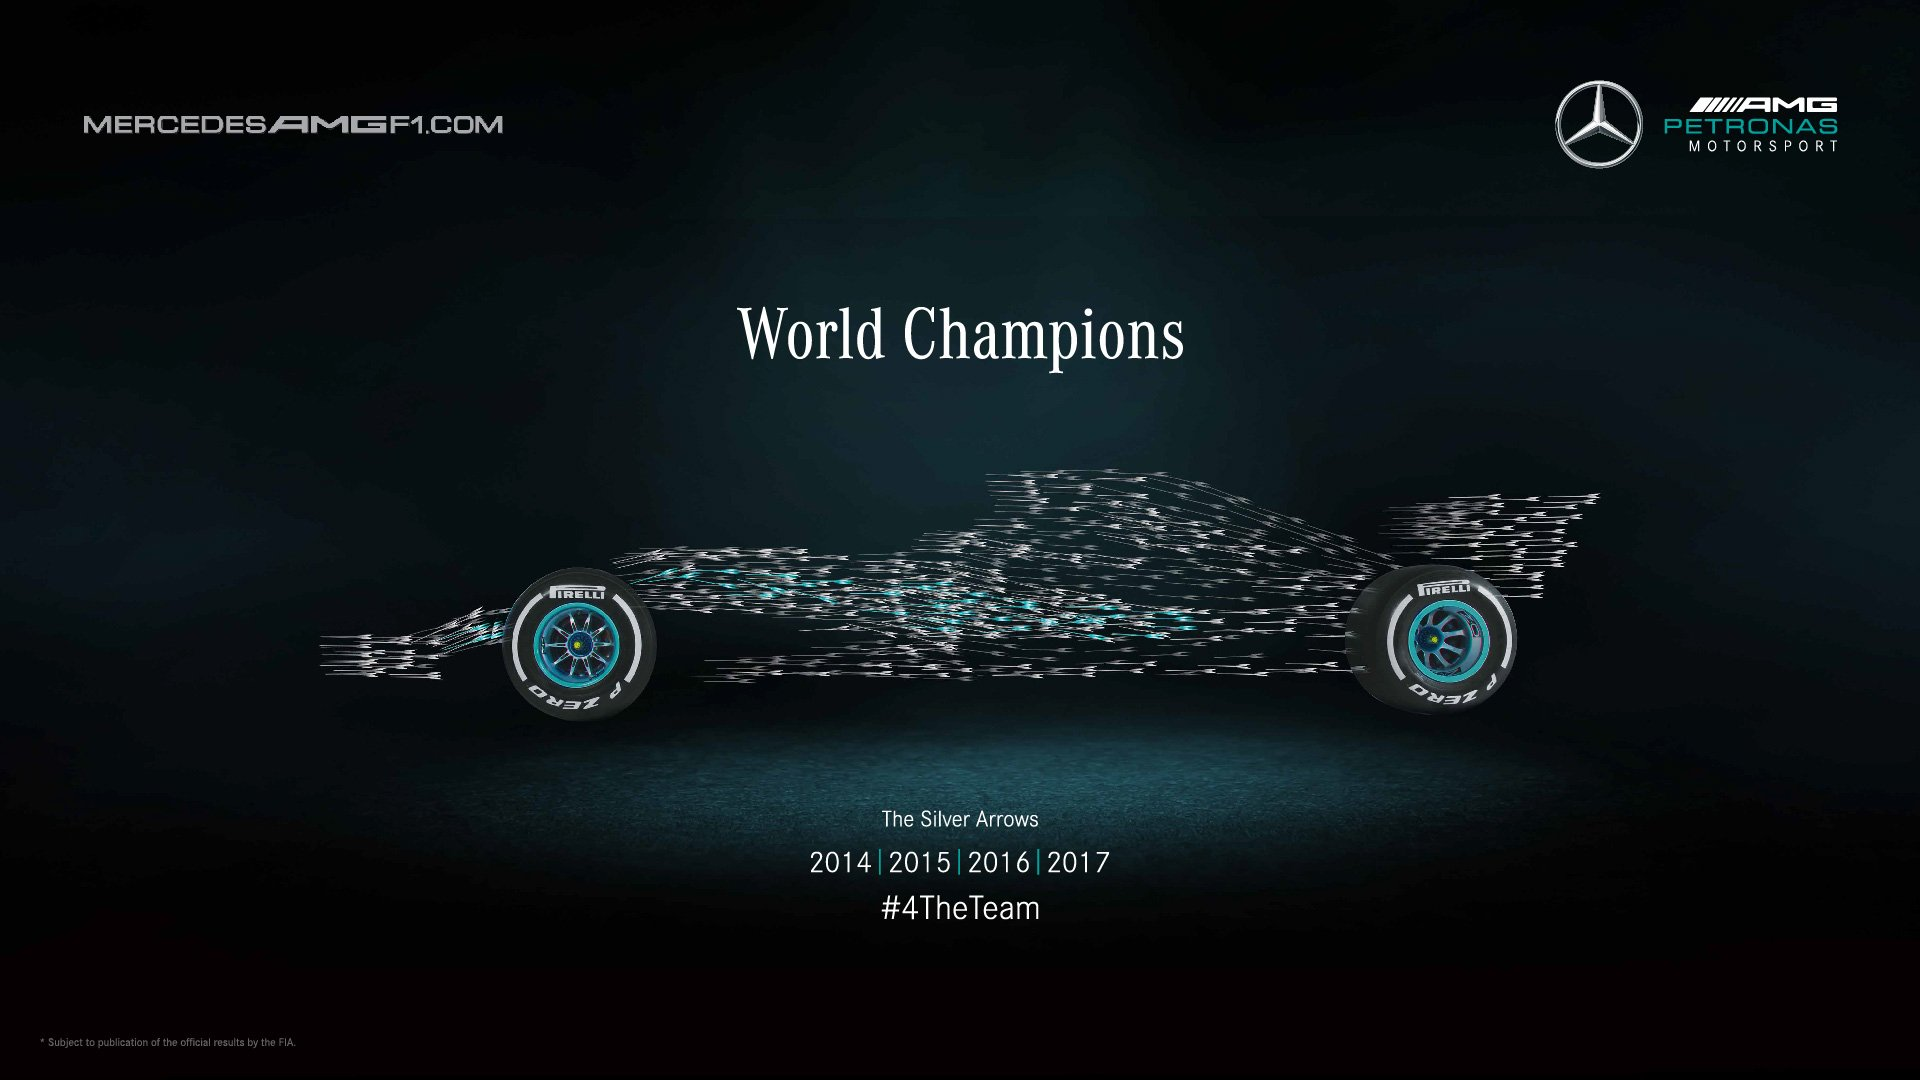 Car 5760x1080 Wallpaper Mercedes Amg F1 On Twitter Quot You Guys Wanted Them And